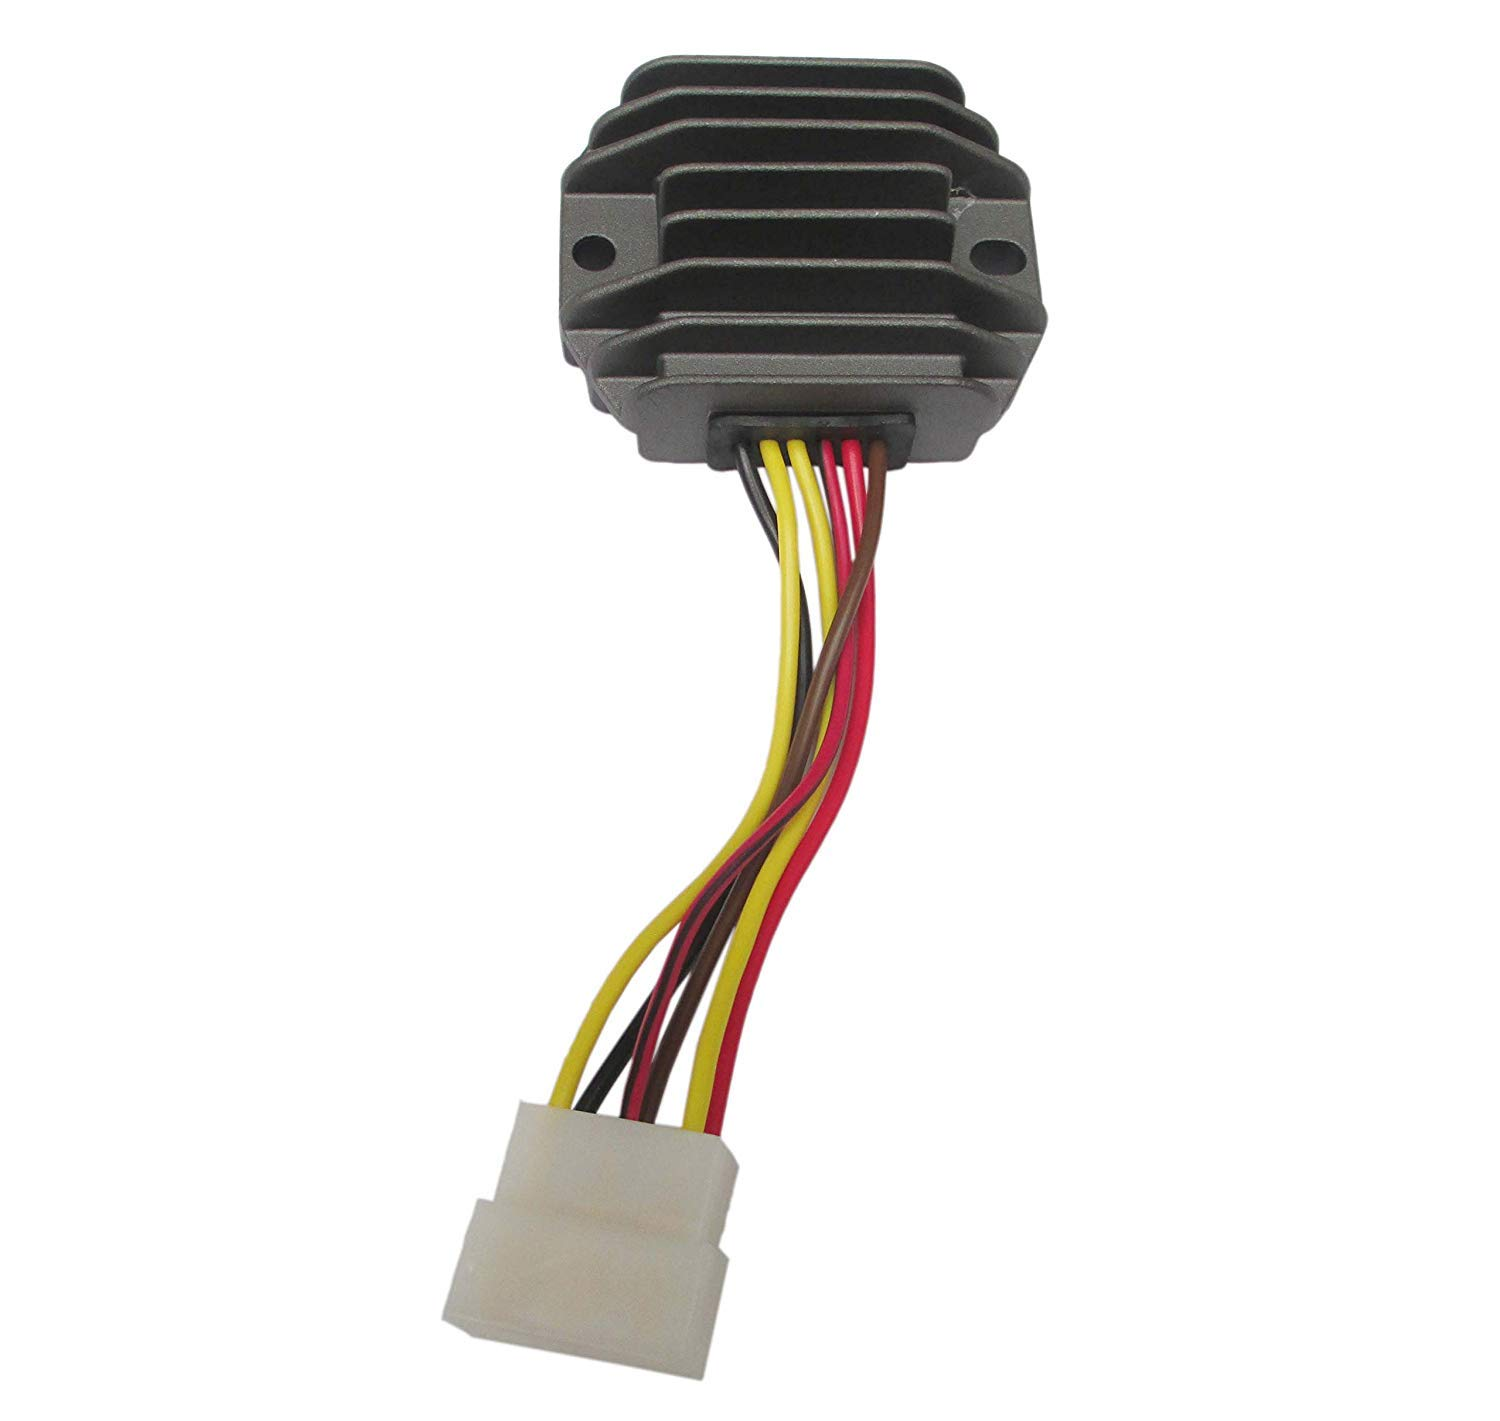 12 Volt Regulator Replaces for John Deere AM101046 AM126304